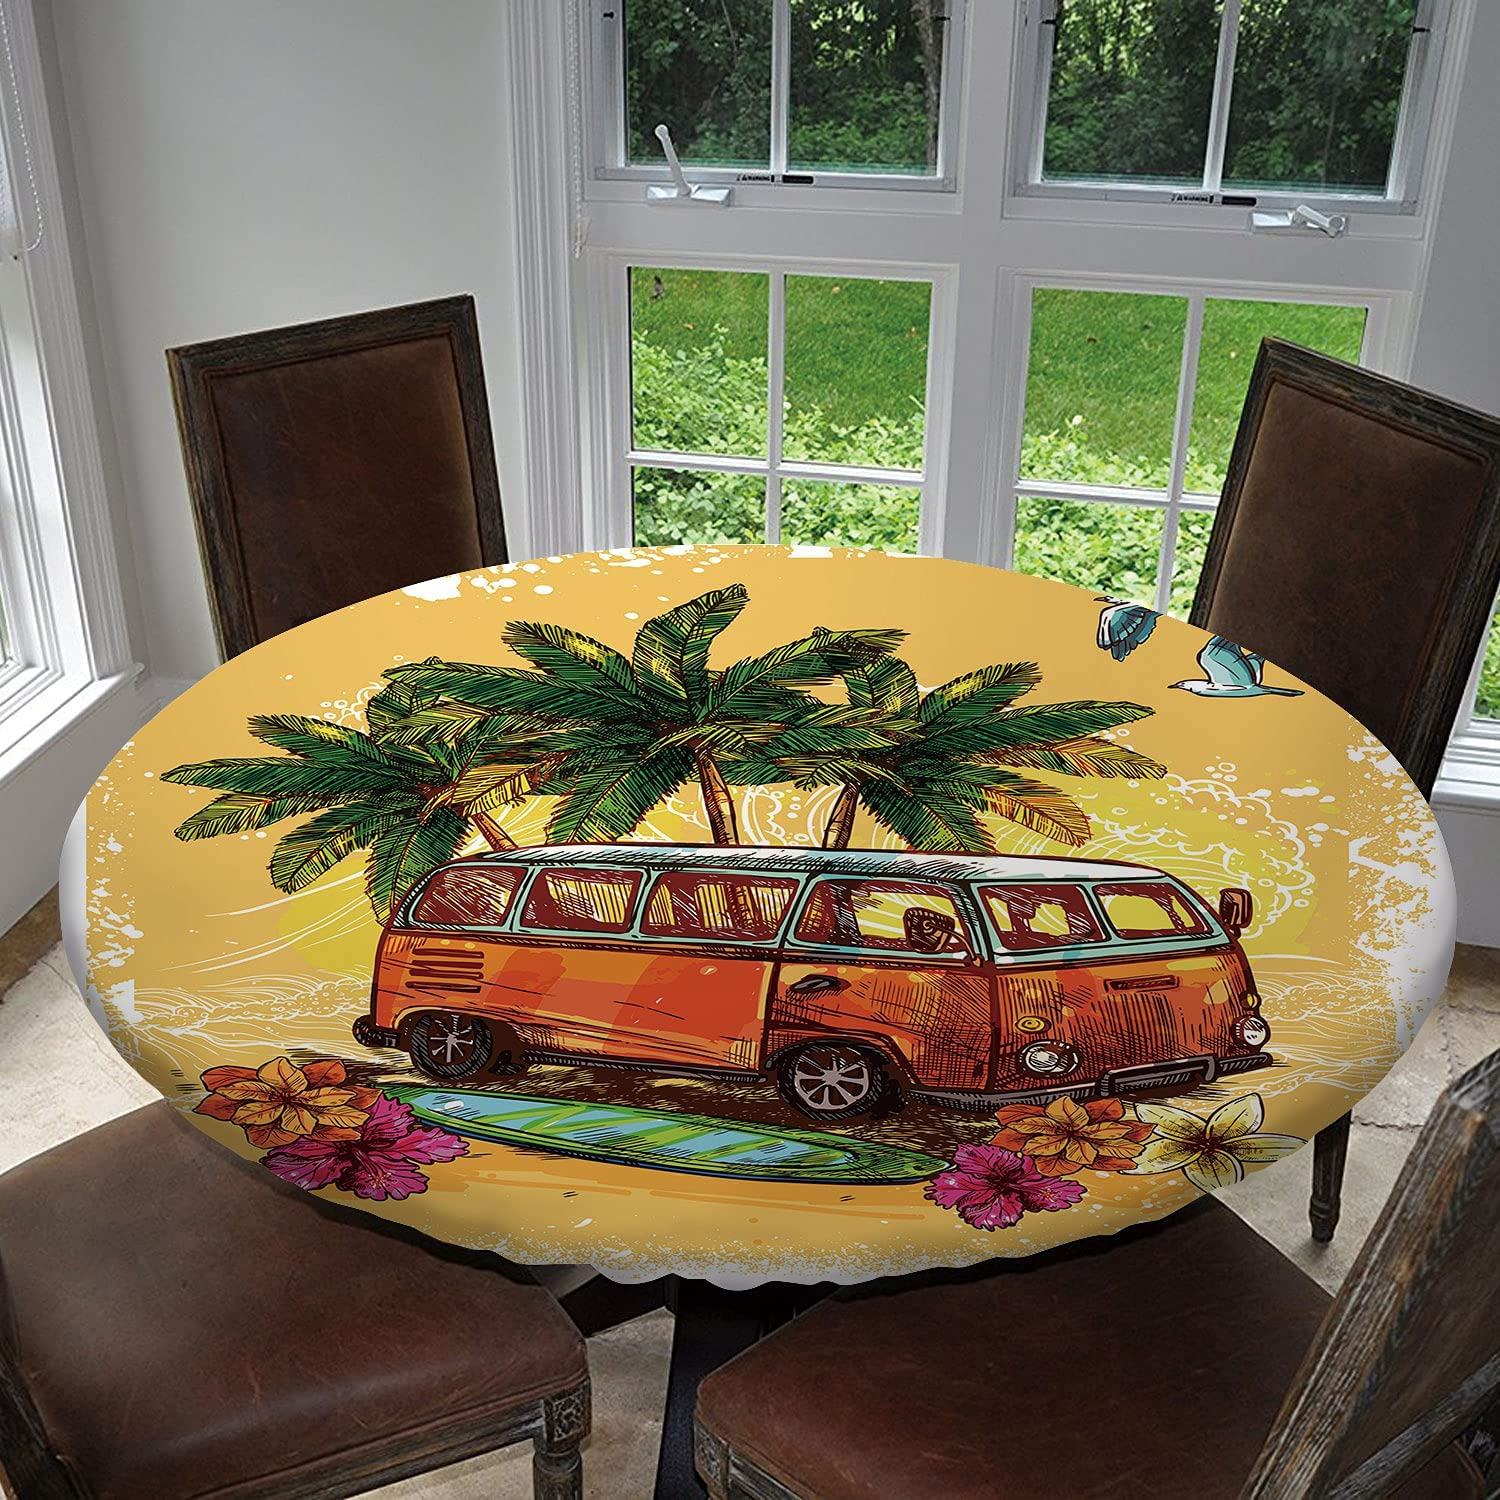 Tstyrea Surf Or Hippy StyleOld Houston Mall Bus Surfboard Outlet sale feature and Pa with Flowers